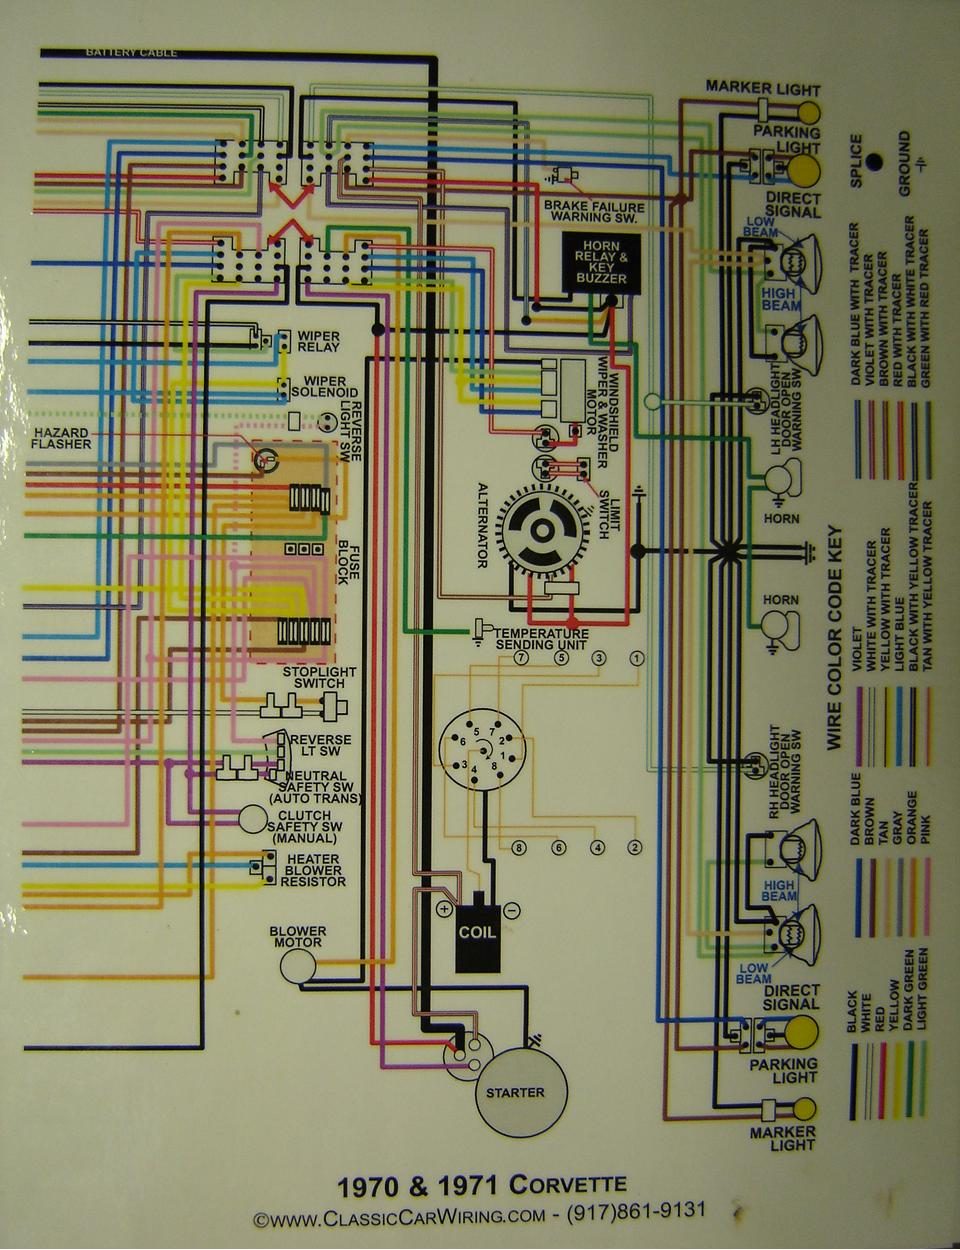 medium resolution of 74 corvette wiring diagram just another wiring diagram blog u2022 rh aesar store 1968 corvette engine wiring harness 1970 corvette wiring diagram